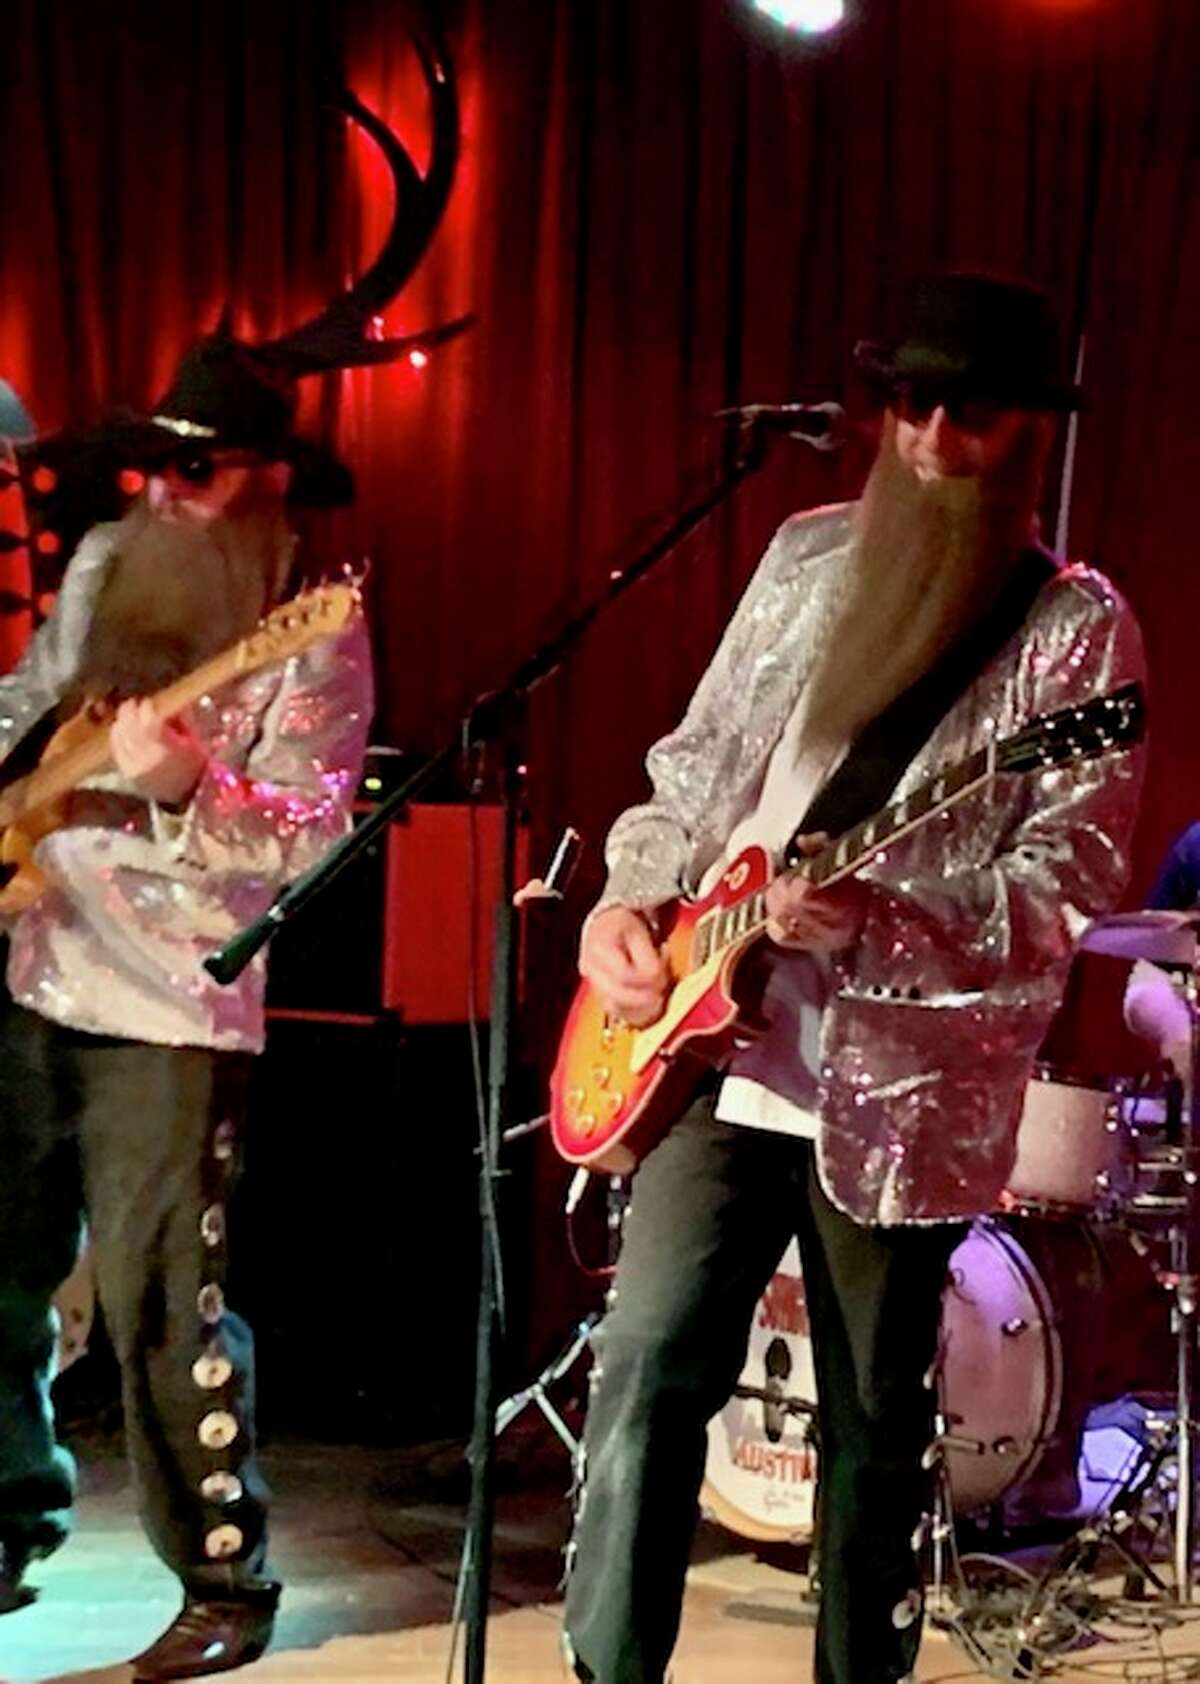 Cheap Sunglasses $40 to $110 8:30 p.m. February 26. A ZZ Top tribute band will perform with the signature moves and sounds that made the Texas duo famous. Sam's Burger Joint 330 East Grayson St